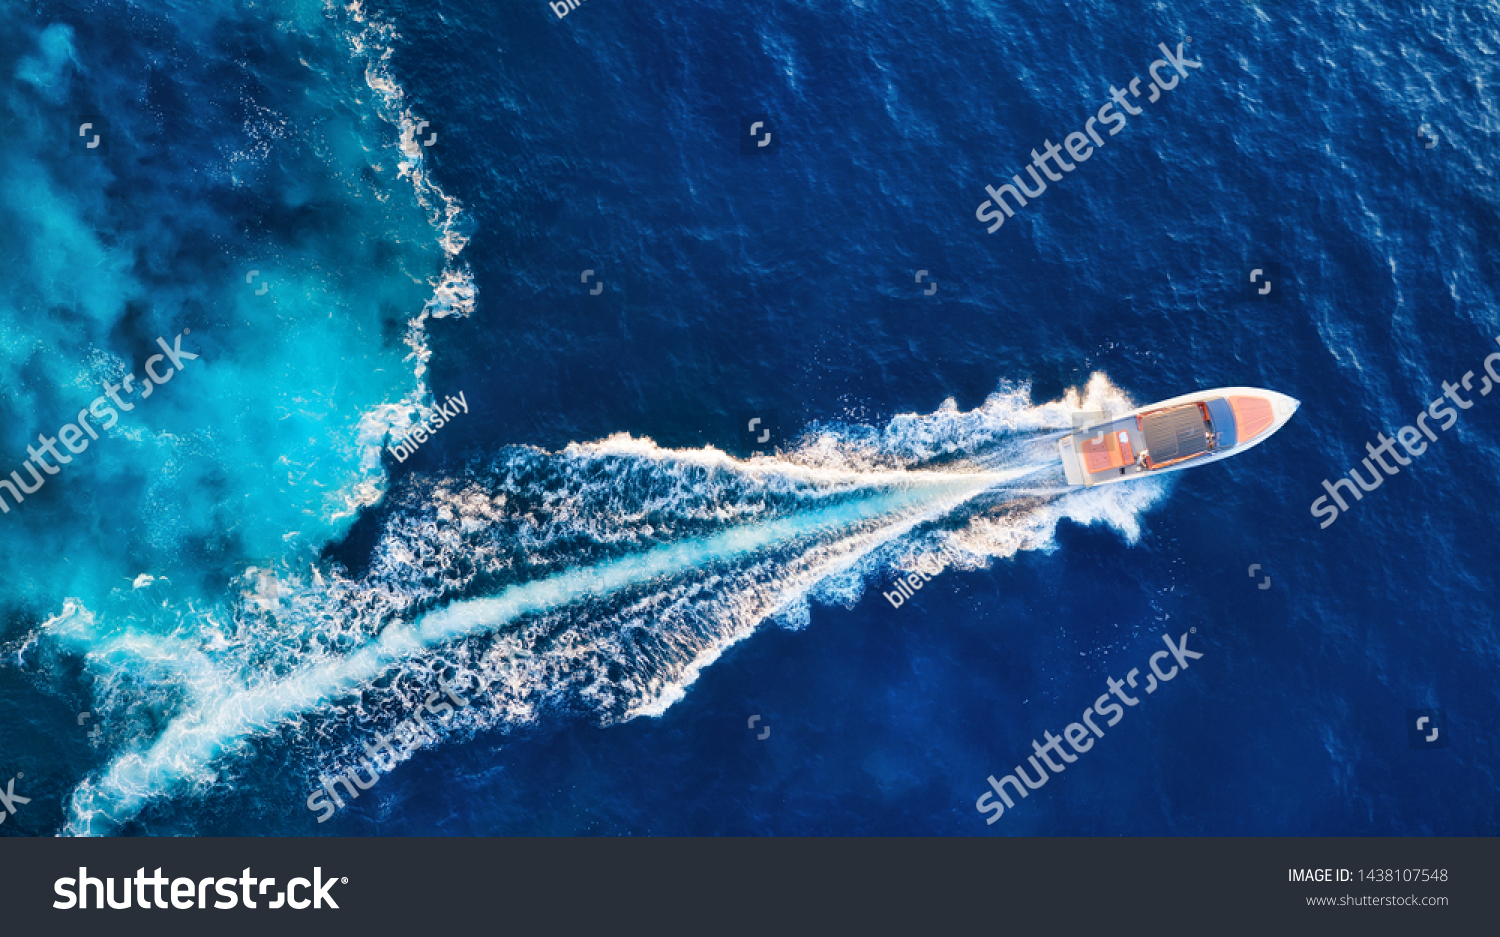 Croatia. Yachts at the sea surface. Aerial view of luxury floating boat on blue Adriatic sea at sunny day. Travel - image #1438107548